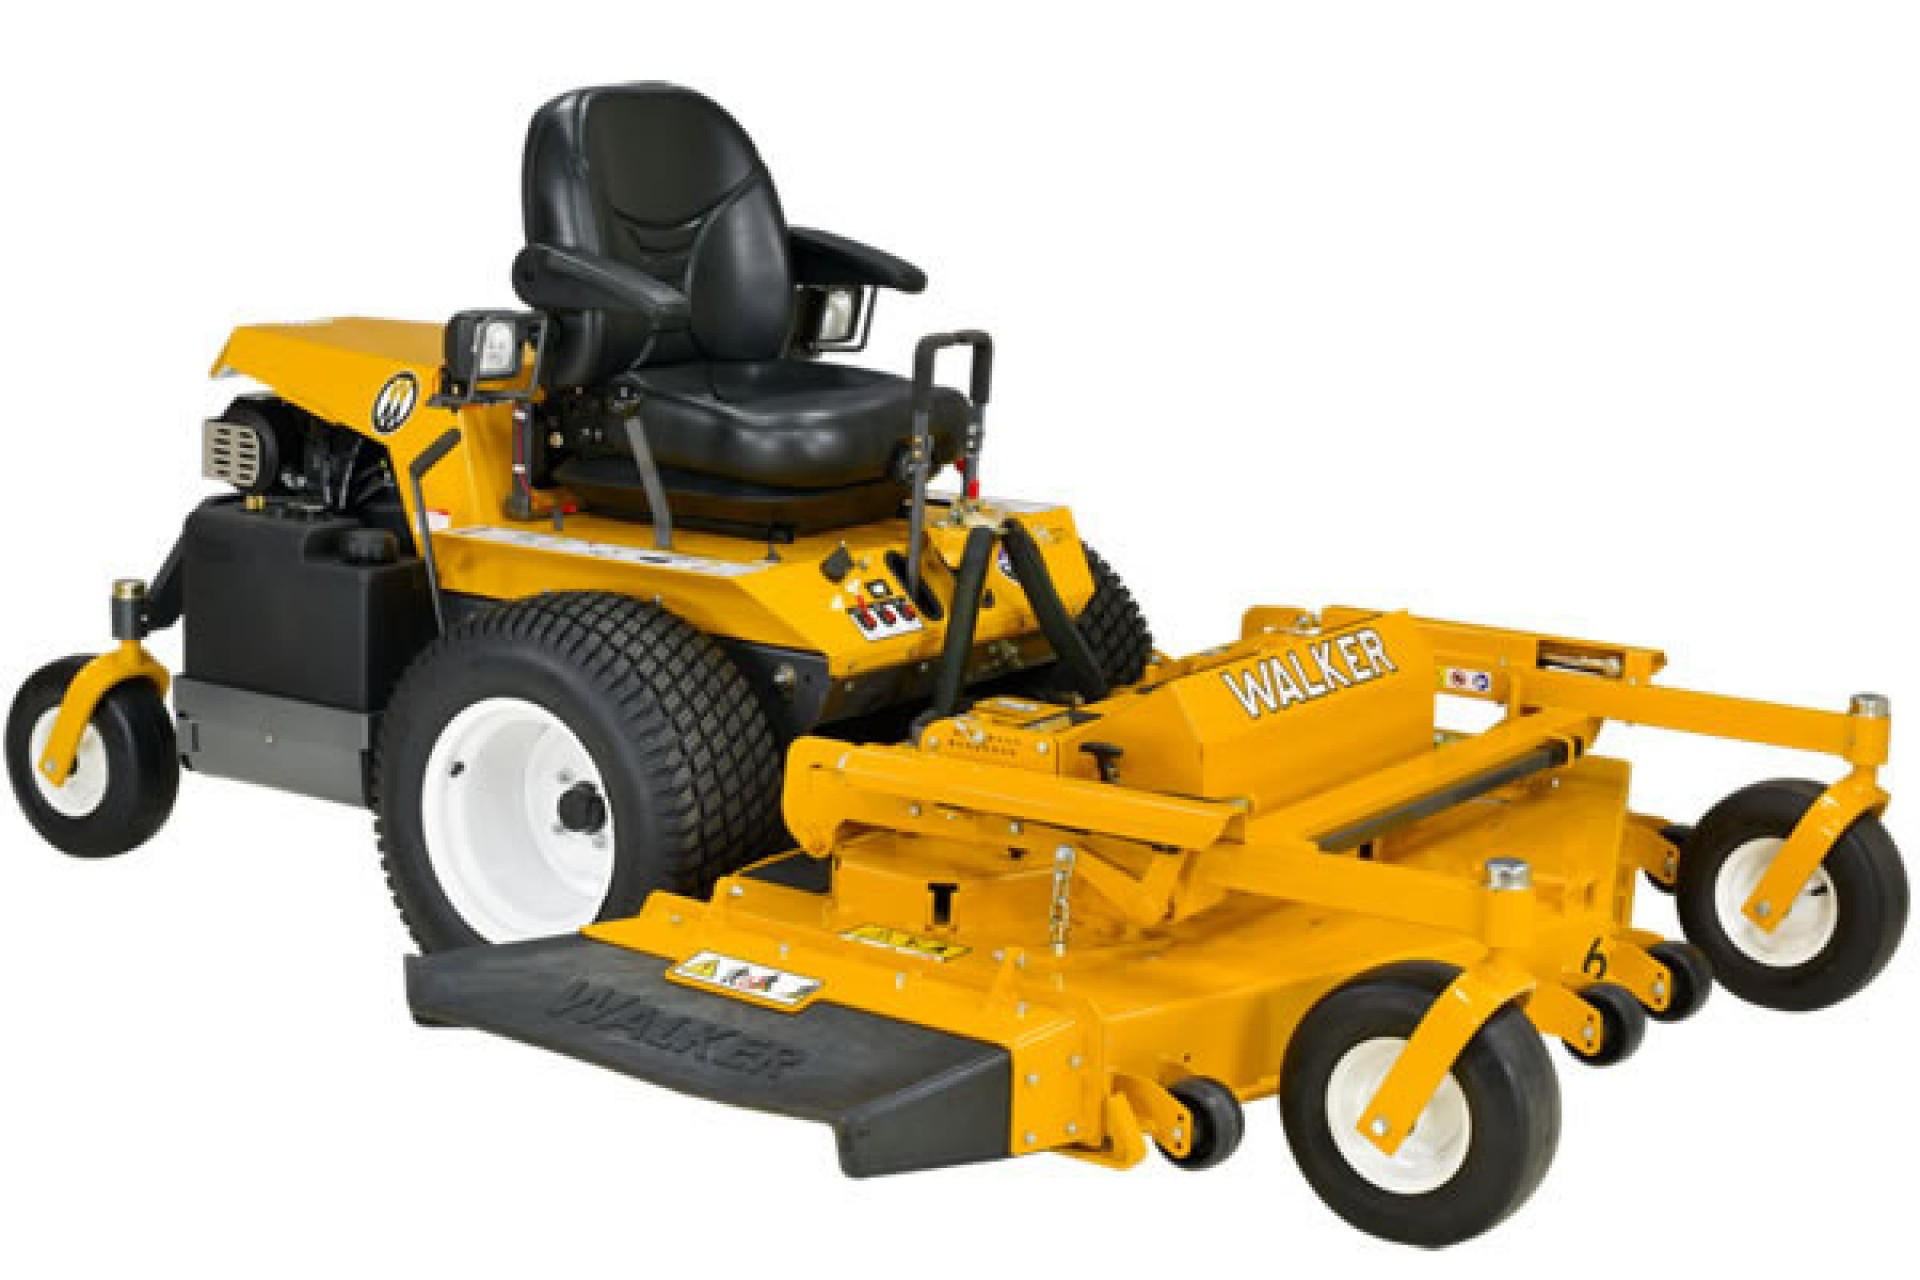 Buy Mowers at Action Equipment | Tauranga, Hamilton